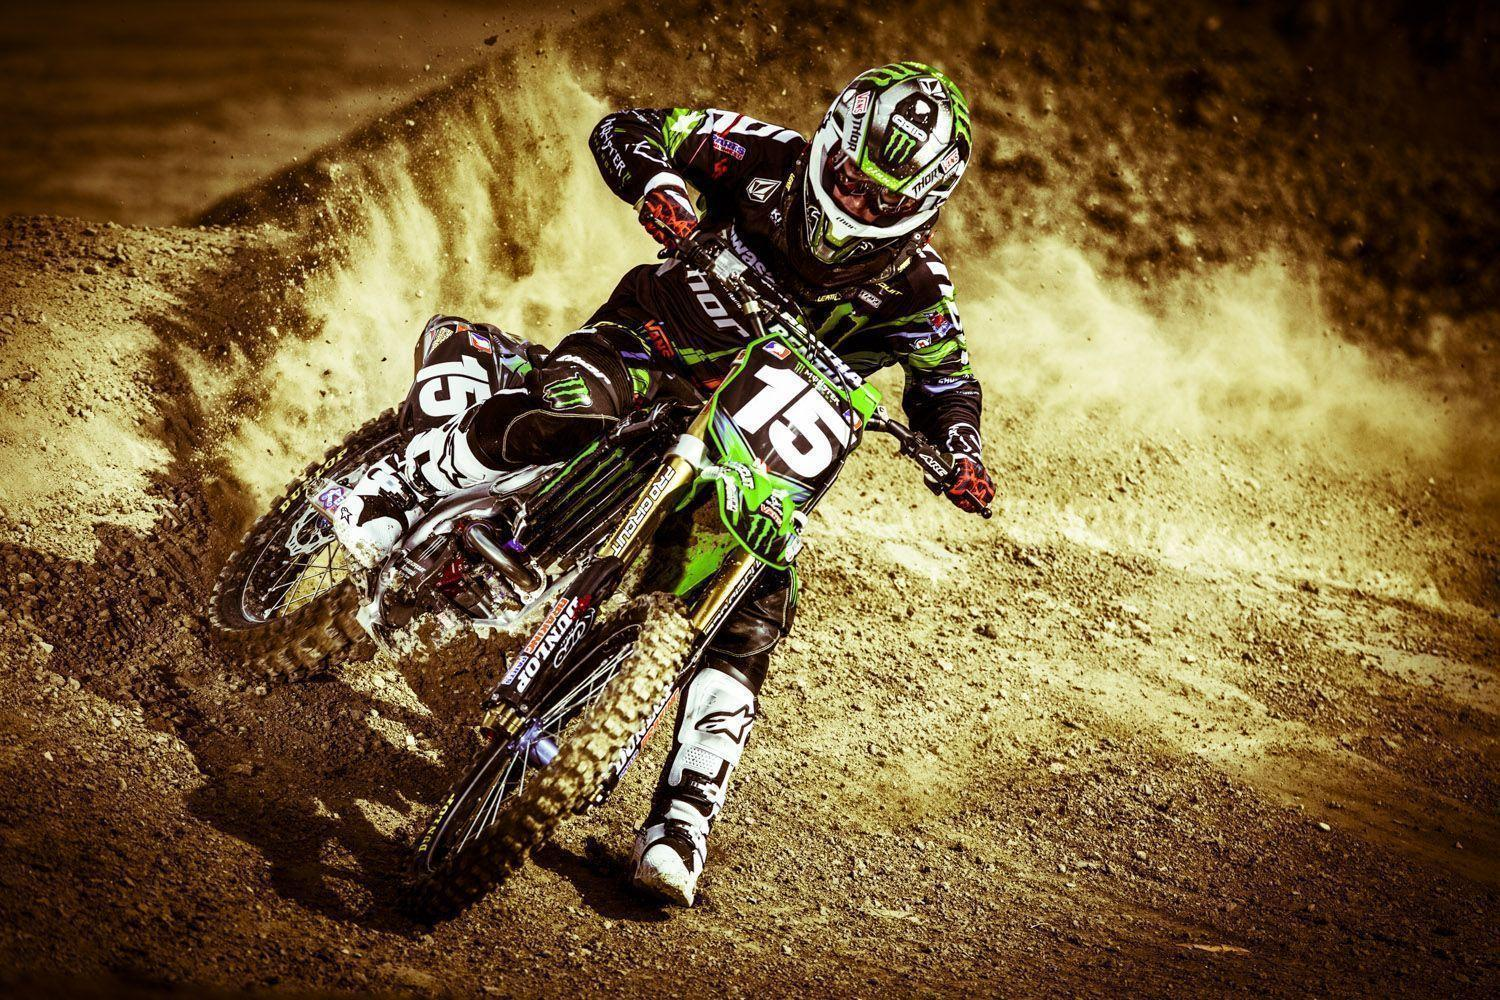 Monster Energy Motocross Wallpaper 17906 Full HD Desktop